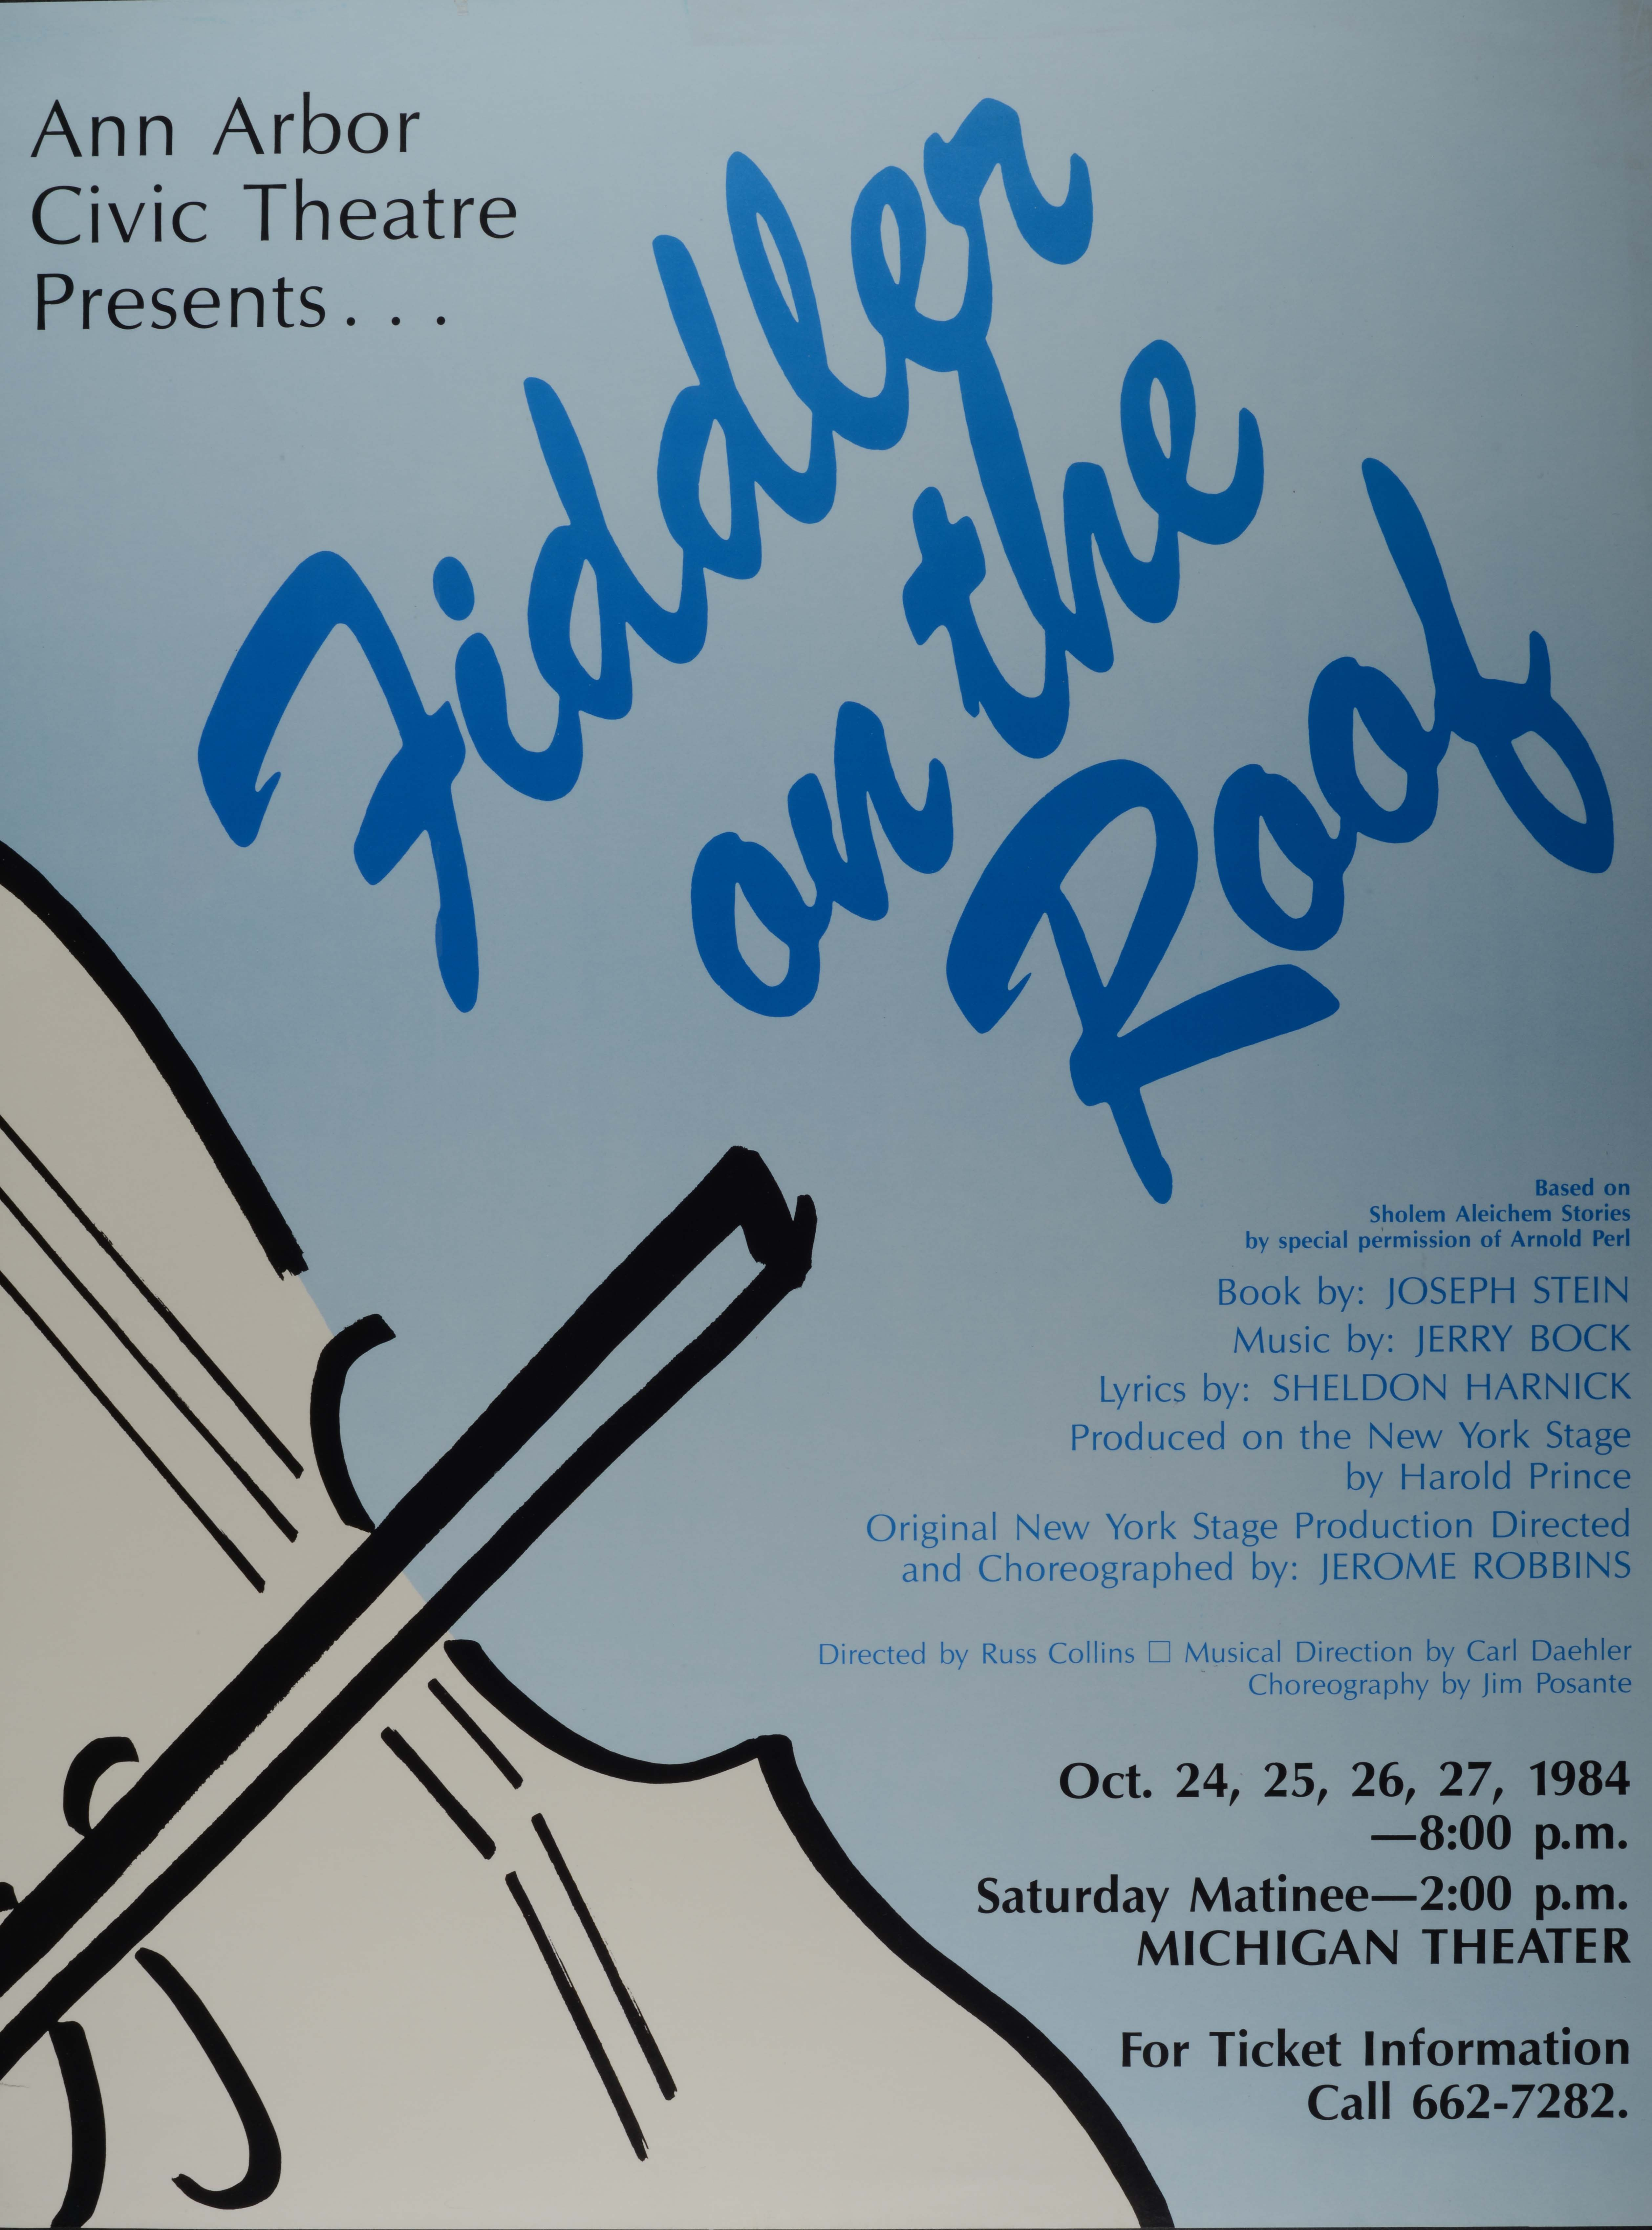 Ann Arbor Civic Theatre Poster: Fiddler on the Roof image